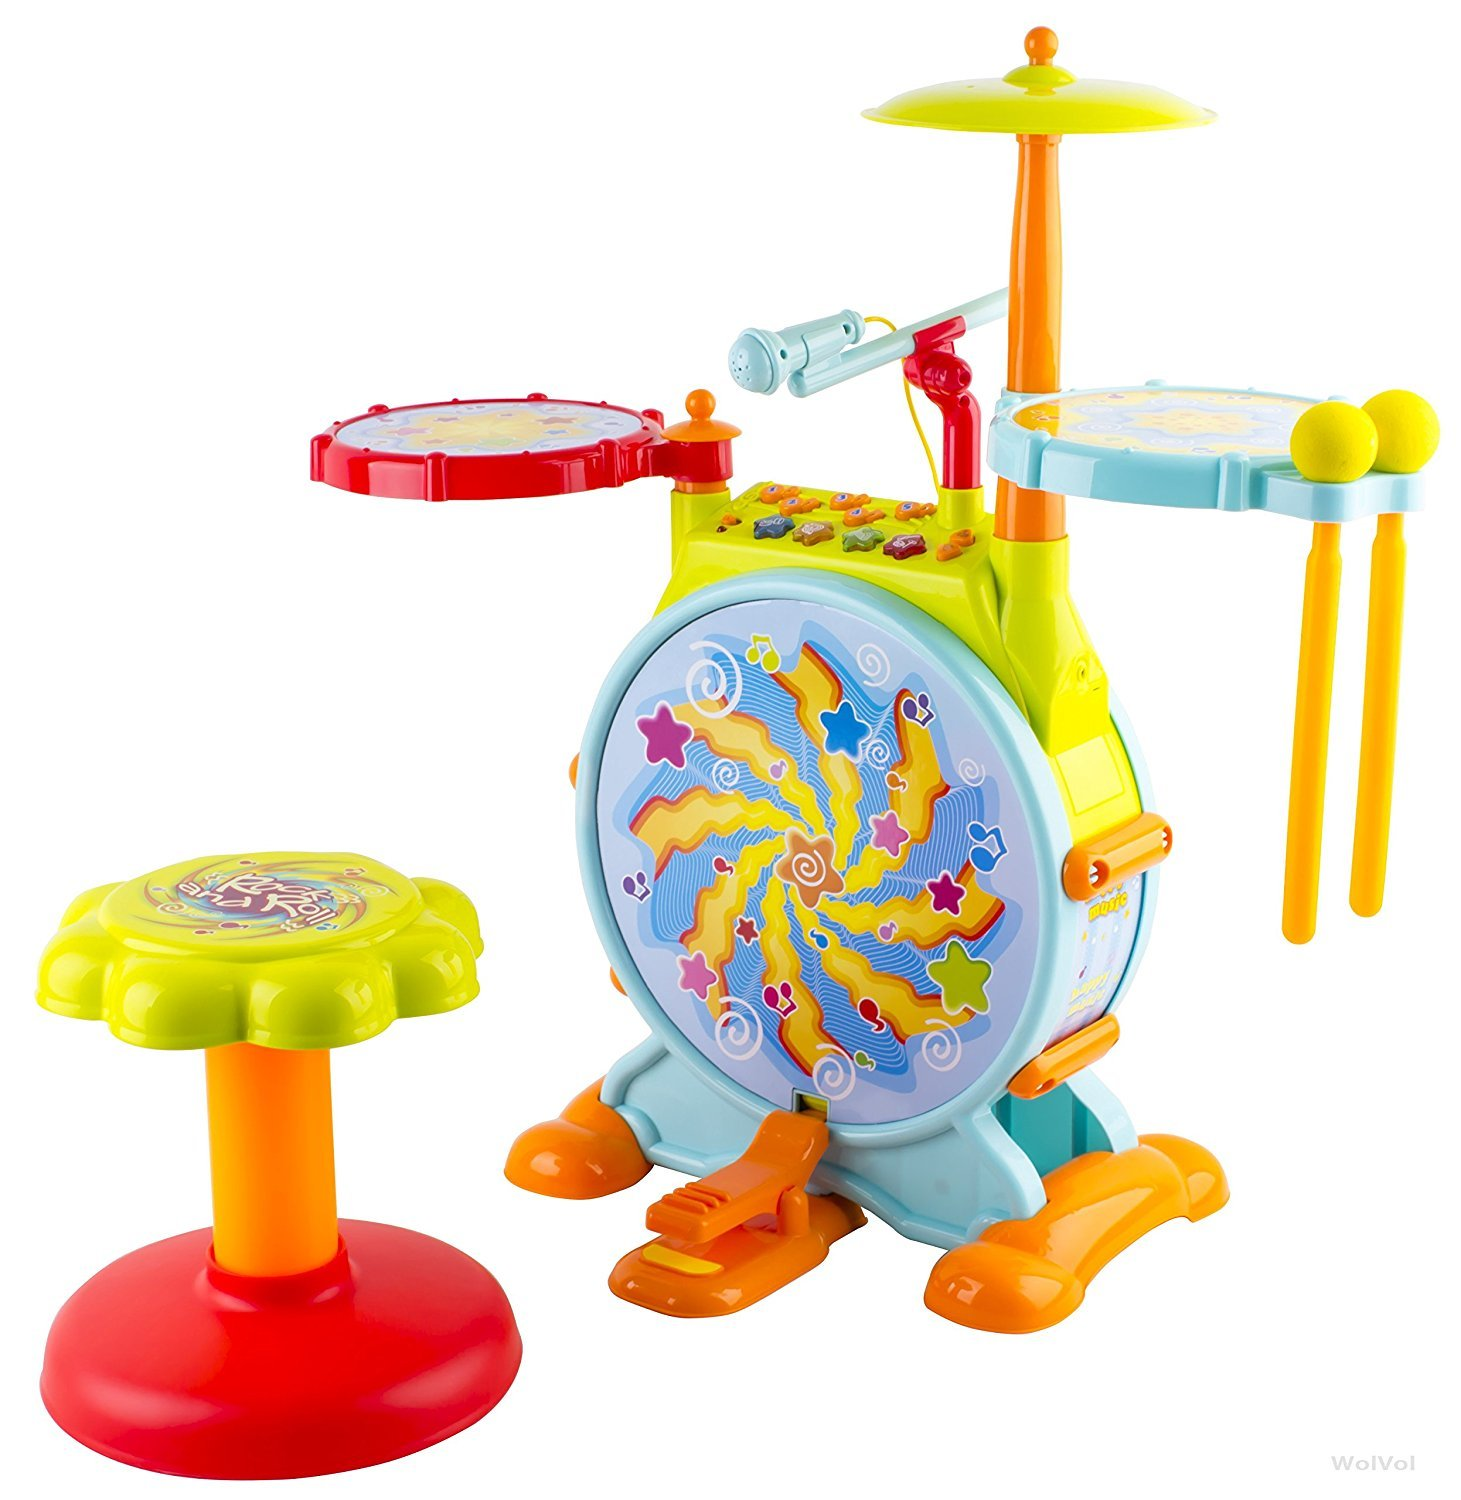 WolVol Electric Toy Drum Sets